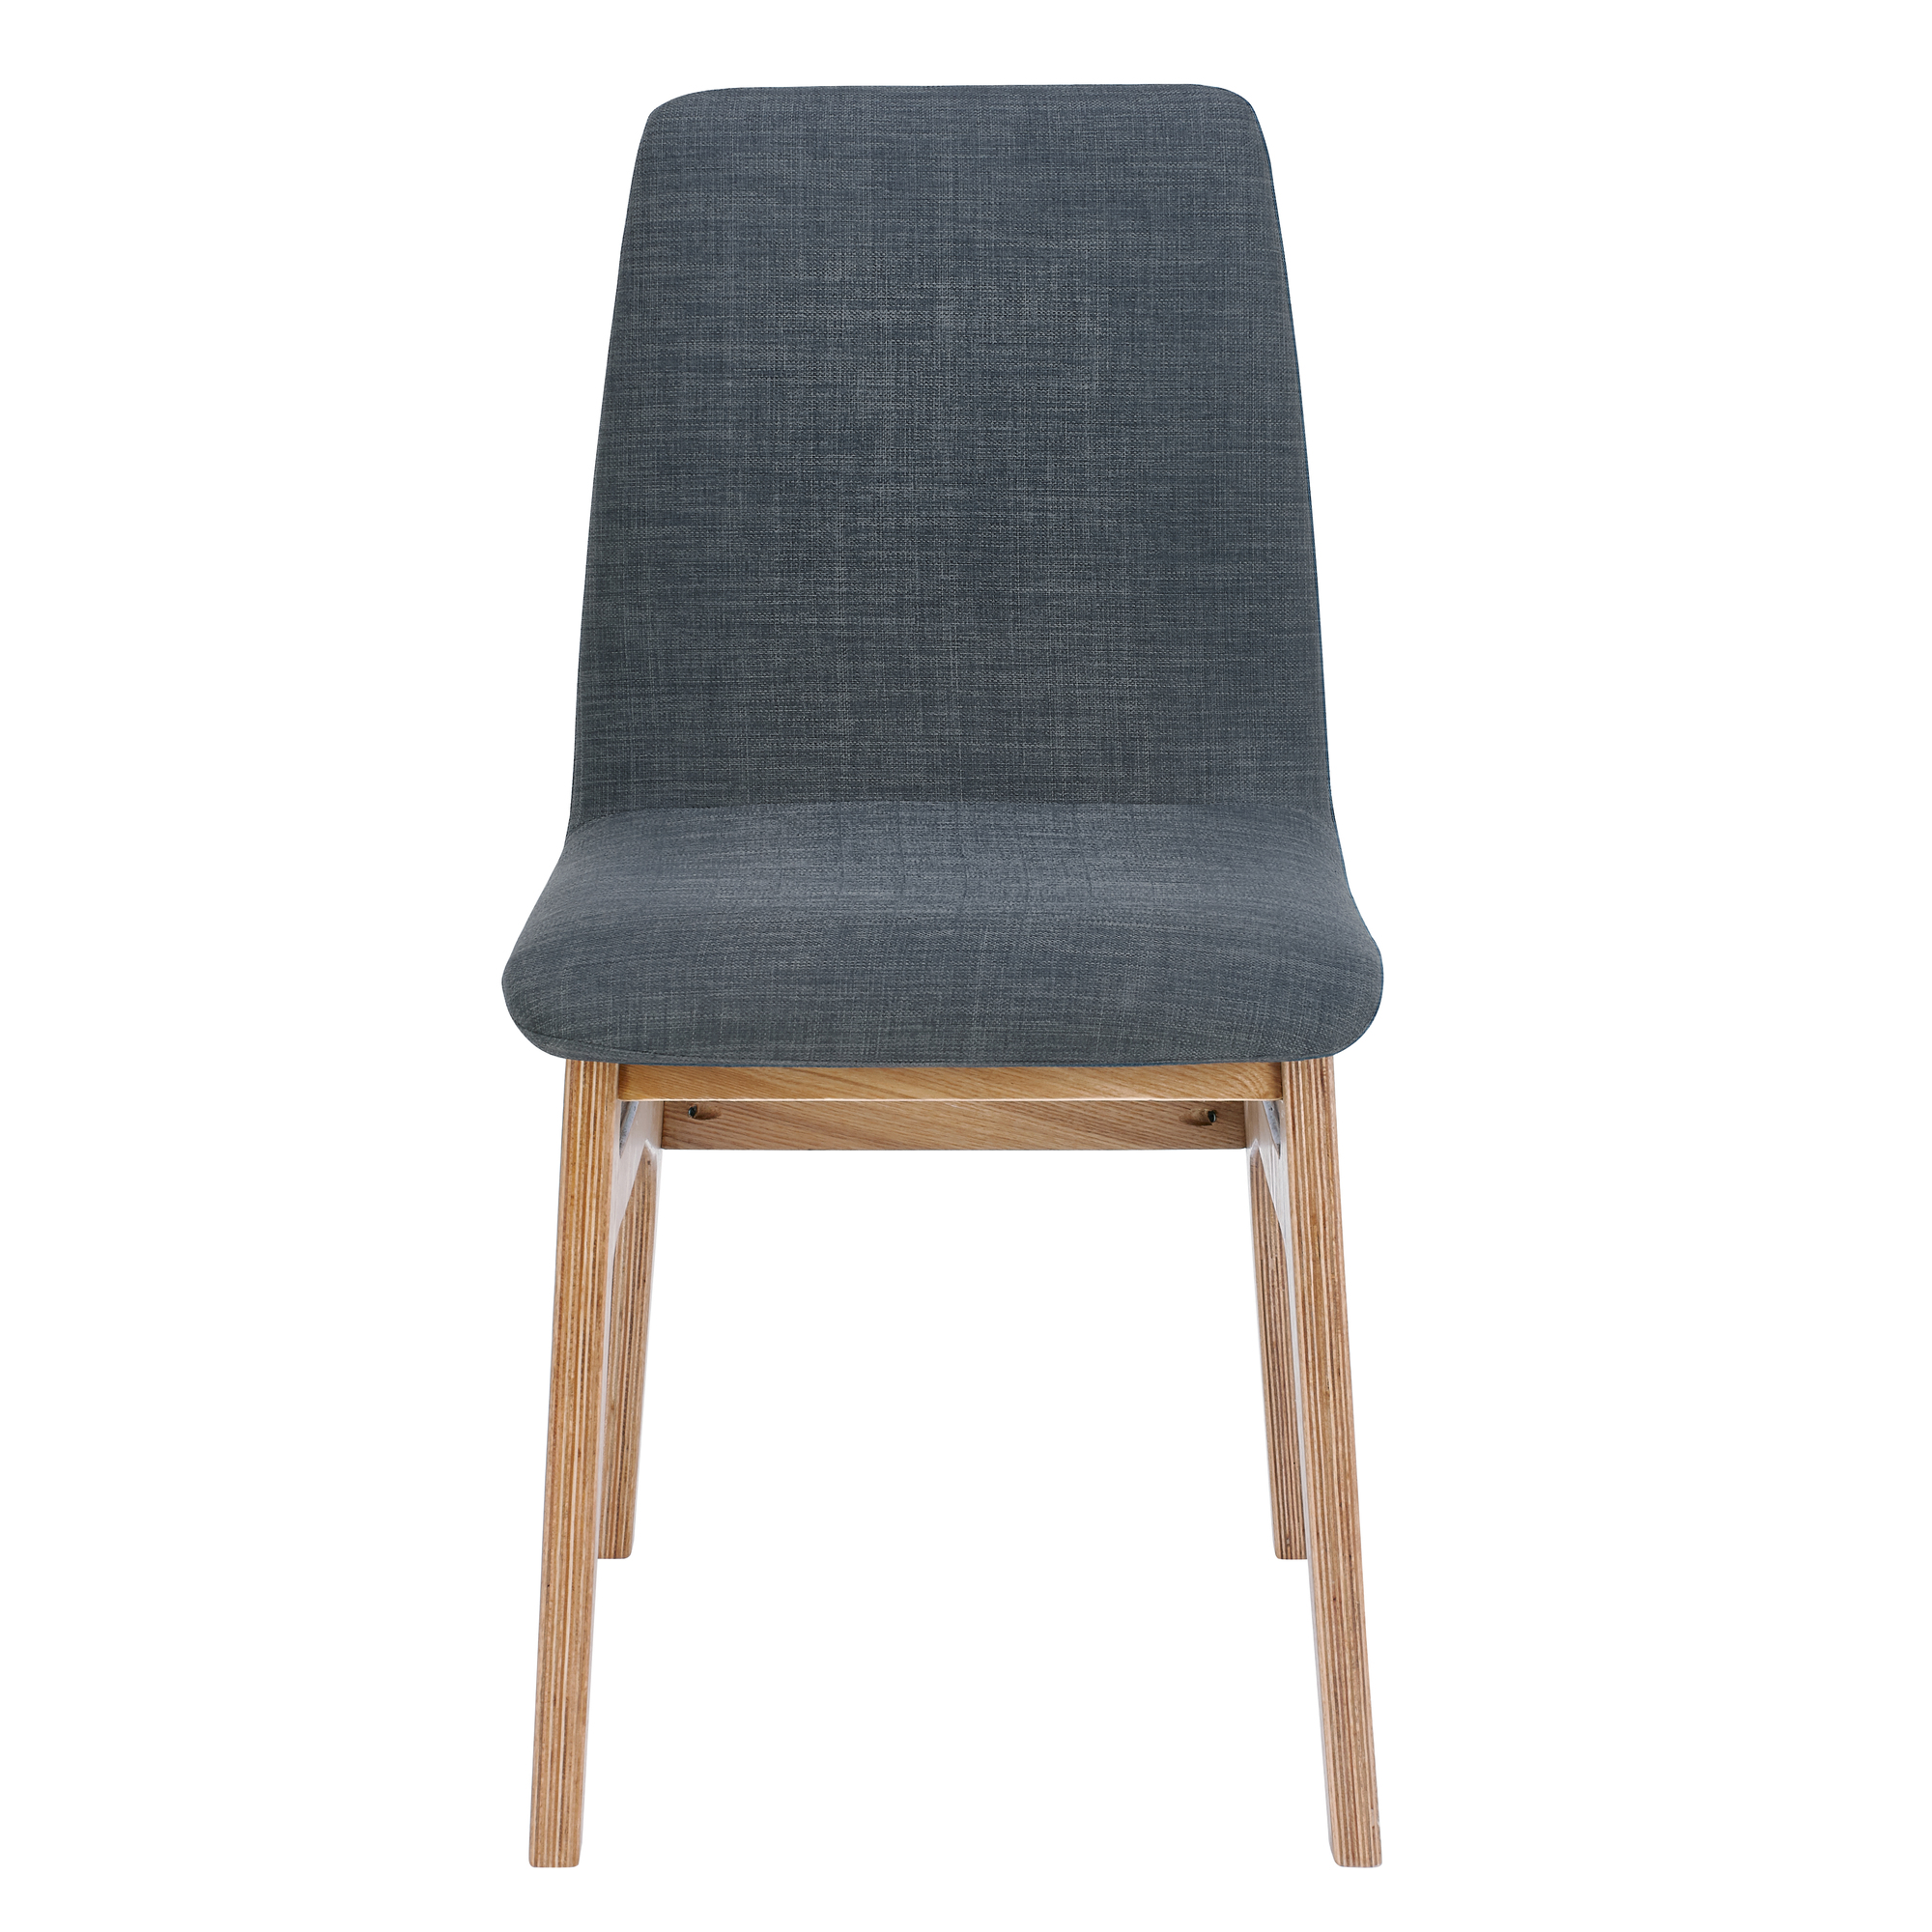 Latest Dining Chairs: NEW Set Of 2 Adrienne Dining Chairs